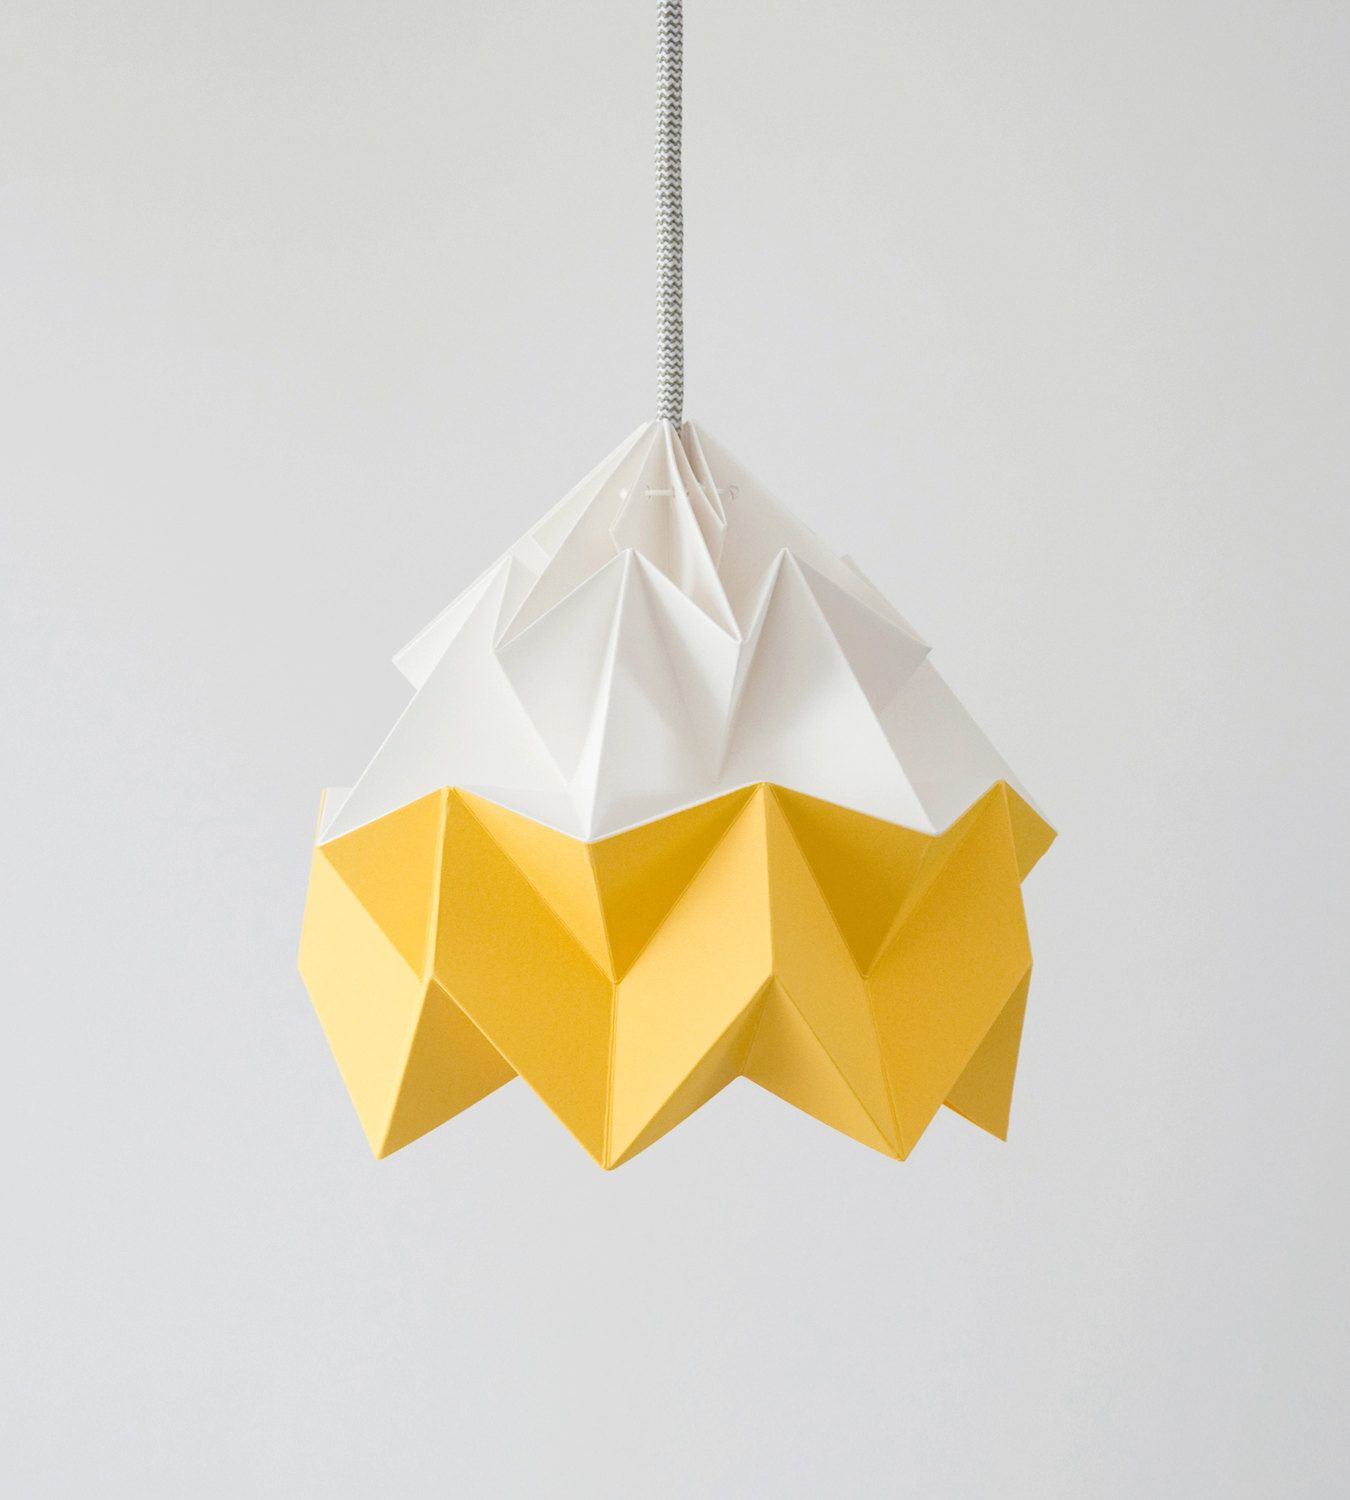 Origami Lampenschirm Moth Origami Lampshade Gold Yellow And White Artsy Design